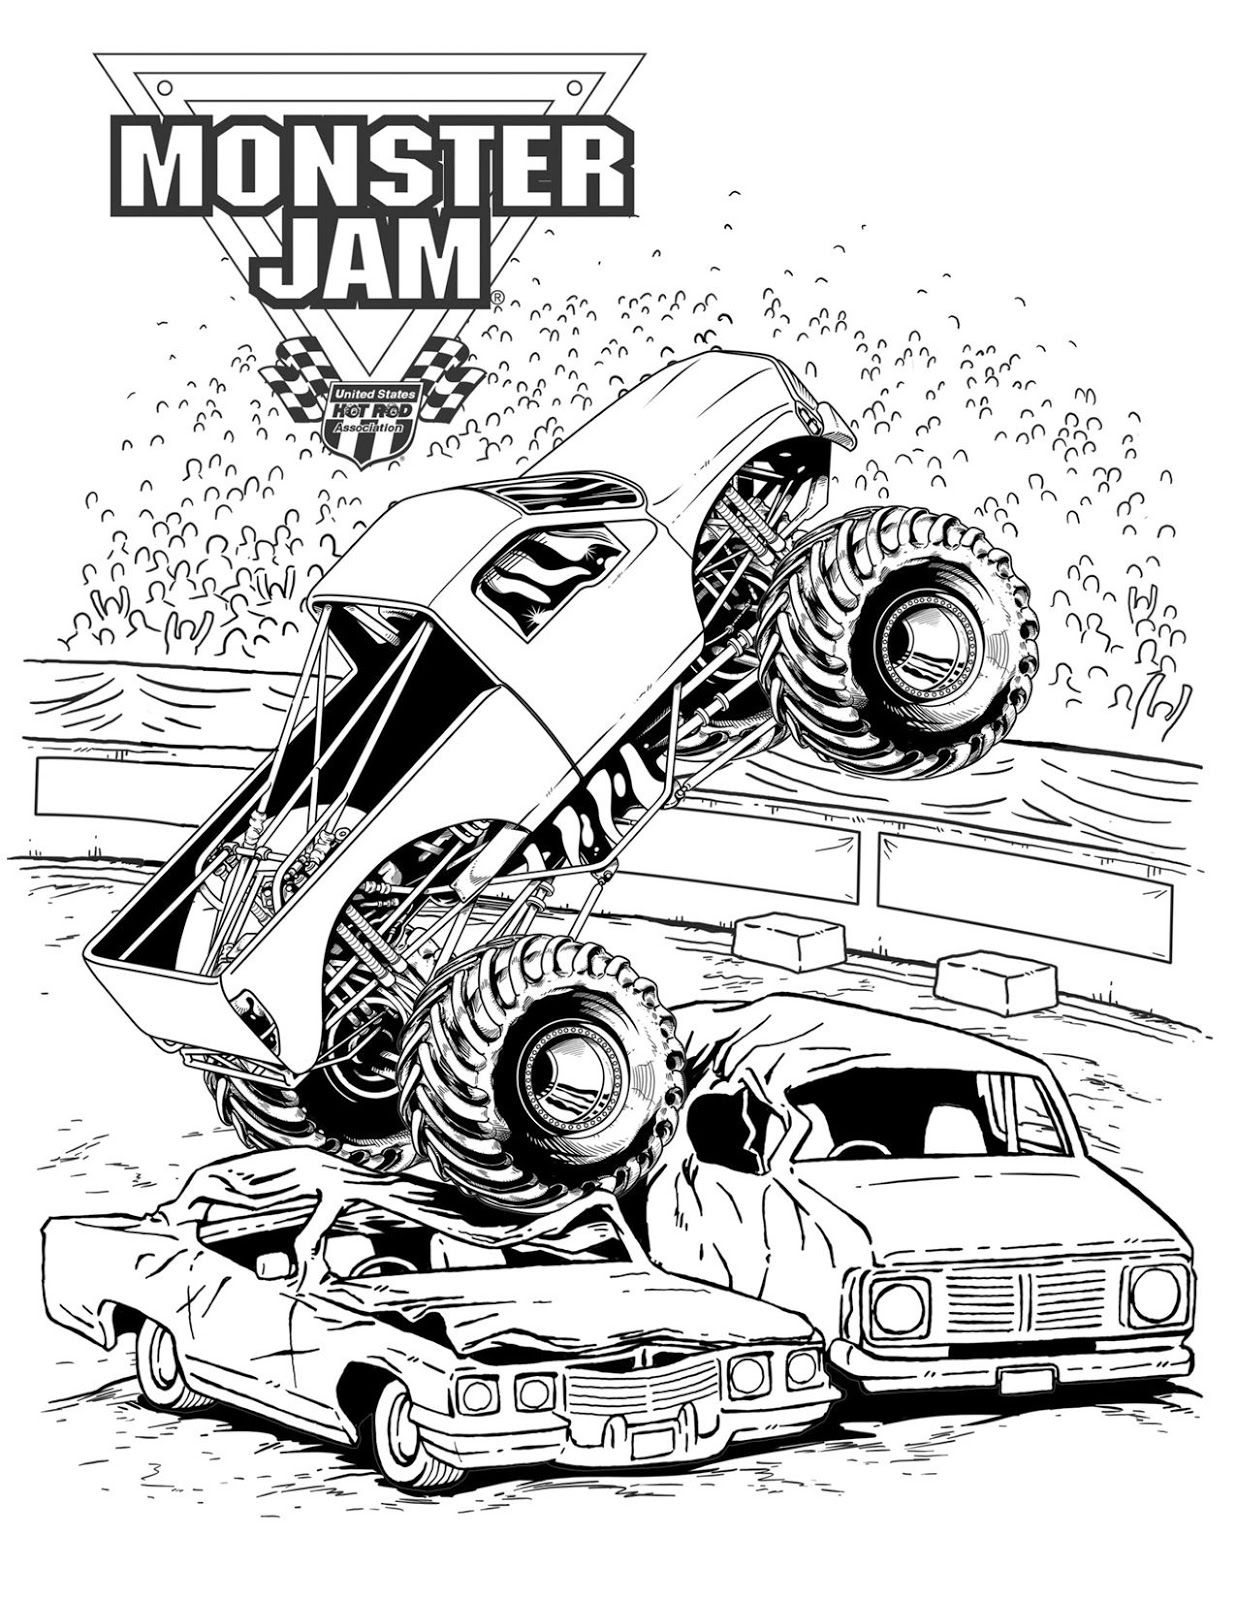 Coloring Sheet Jpg 1 236 1 600 Pixels Monster Truck Coloring